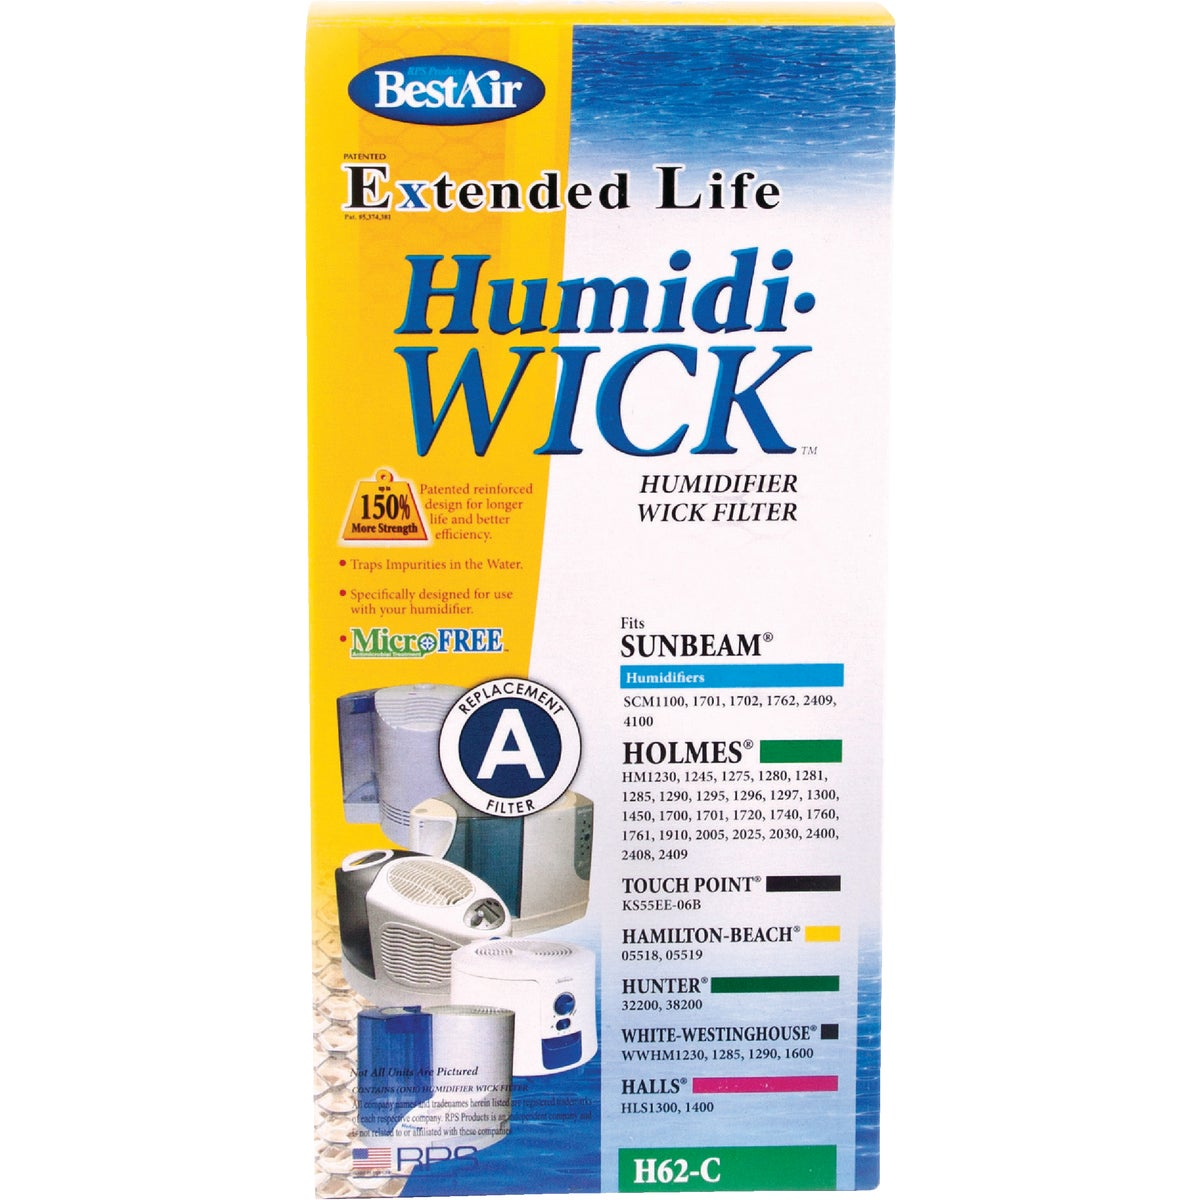 HUMIDIFIER WICK FILTER - H62/85 by Rps Products Inc